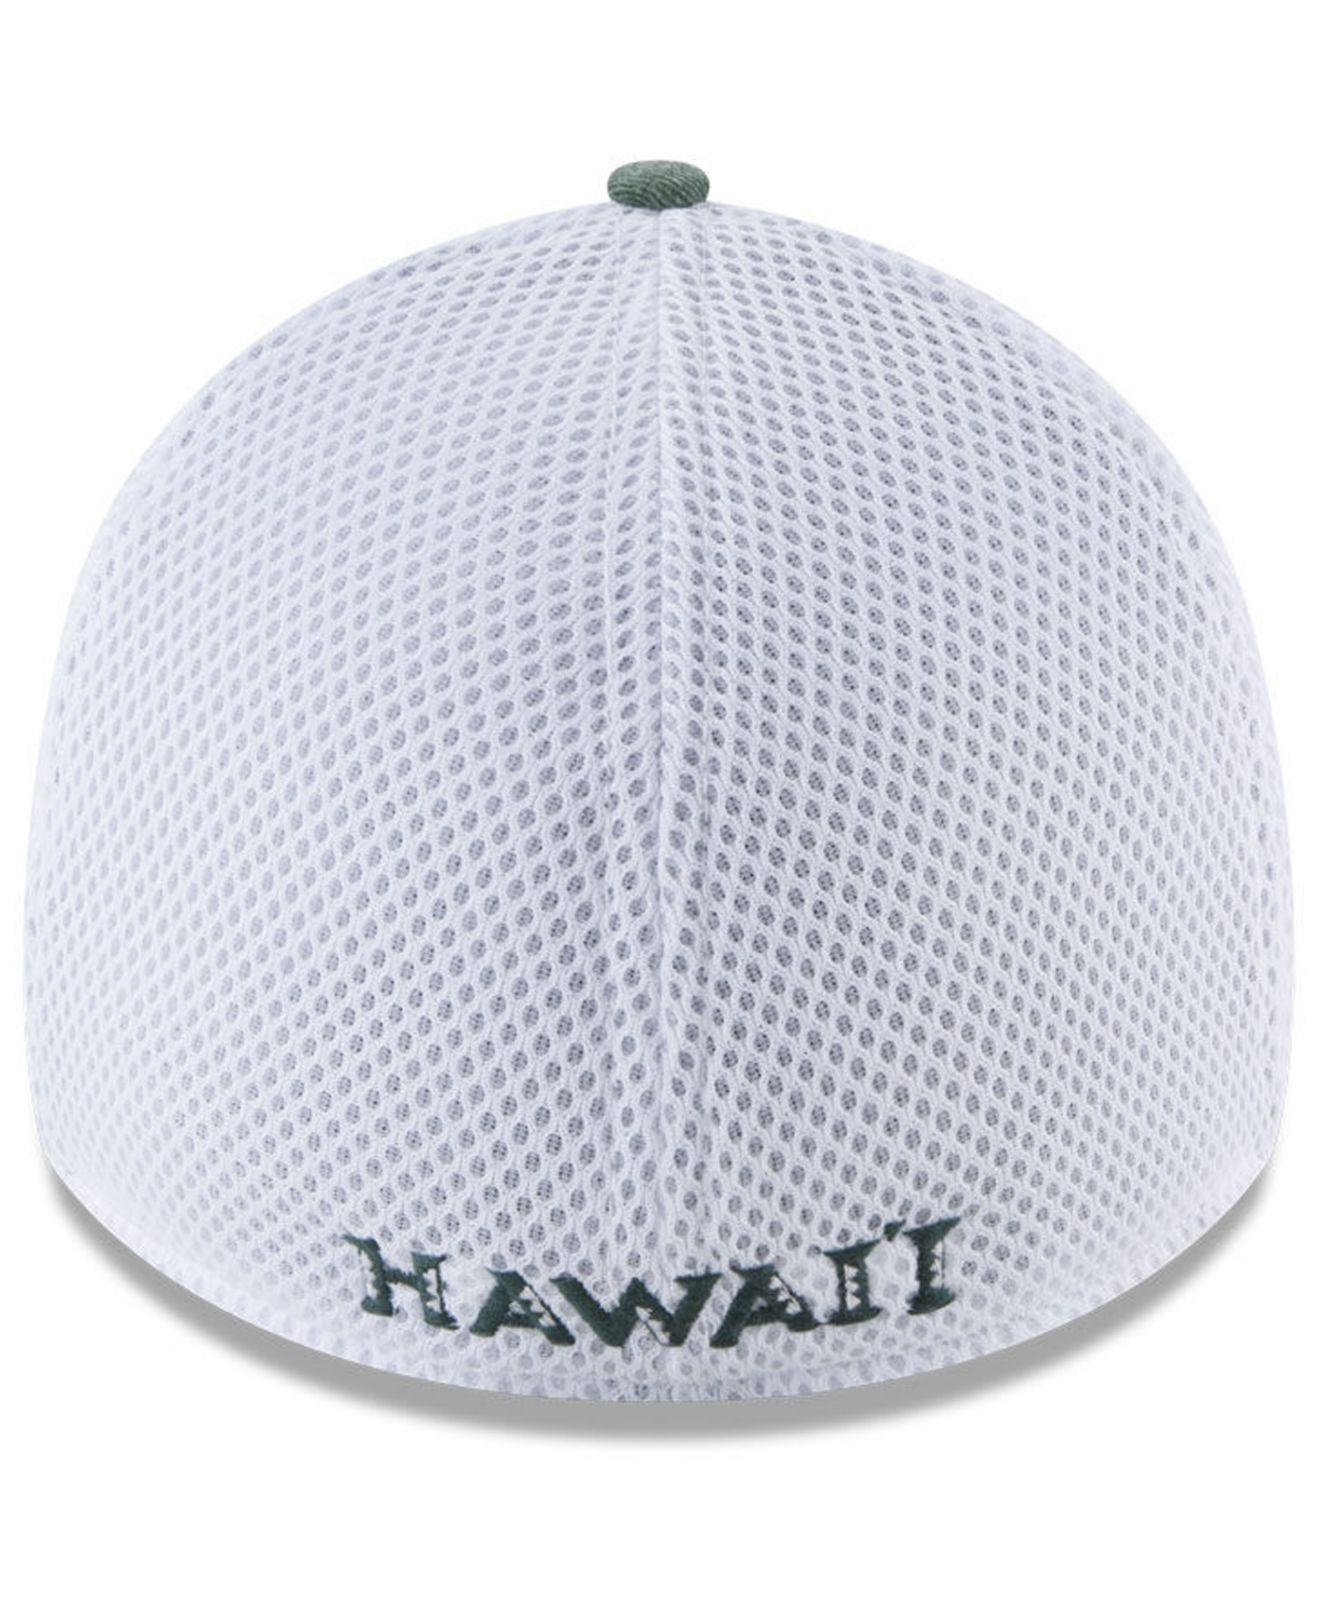 buy online 2ef3f bf2b0 Lyst - KTZ Hawaii Warriors Washed Neo 39thirty Cap in Green for Men